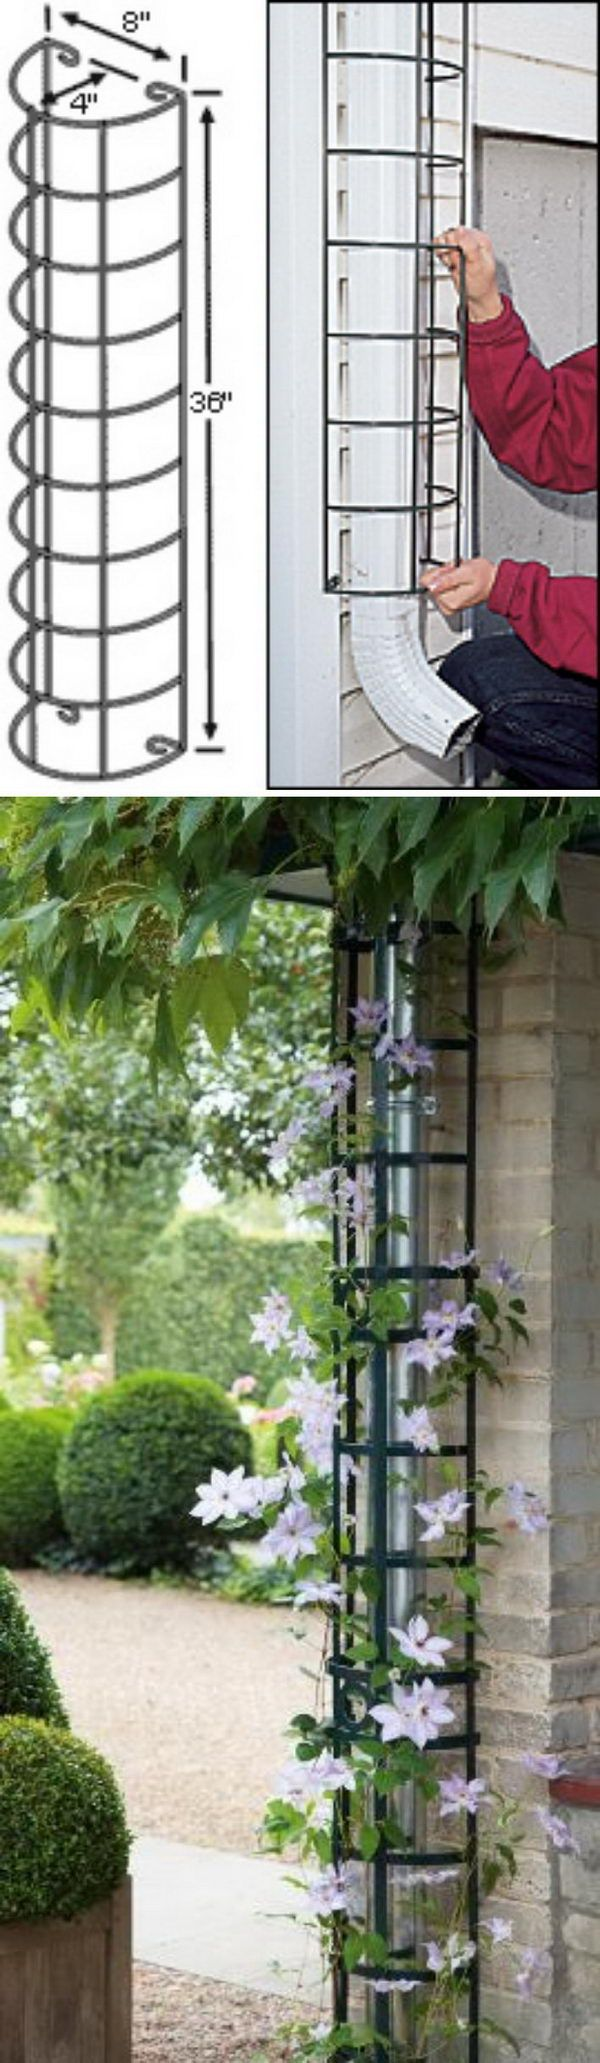 20+ Awesome DIY Garden Trellis Projects